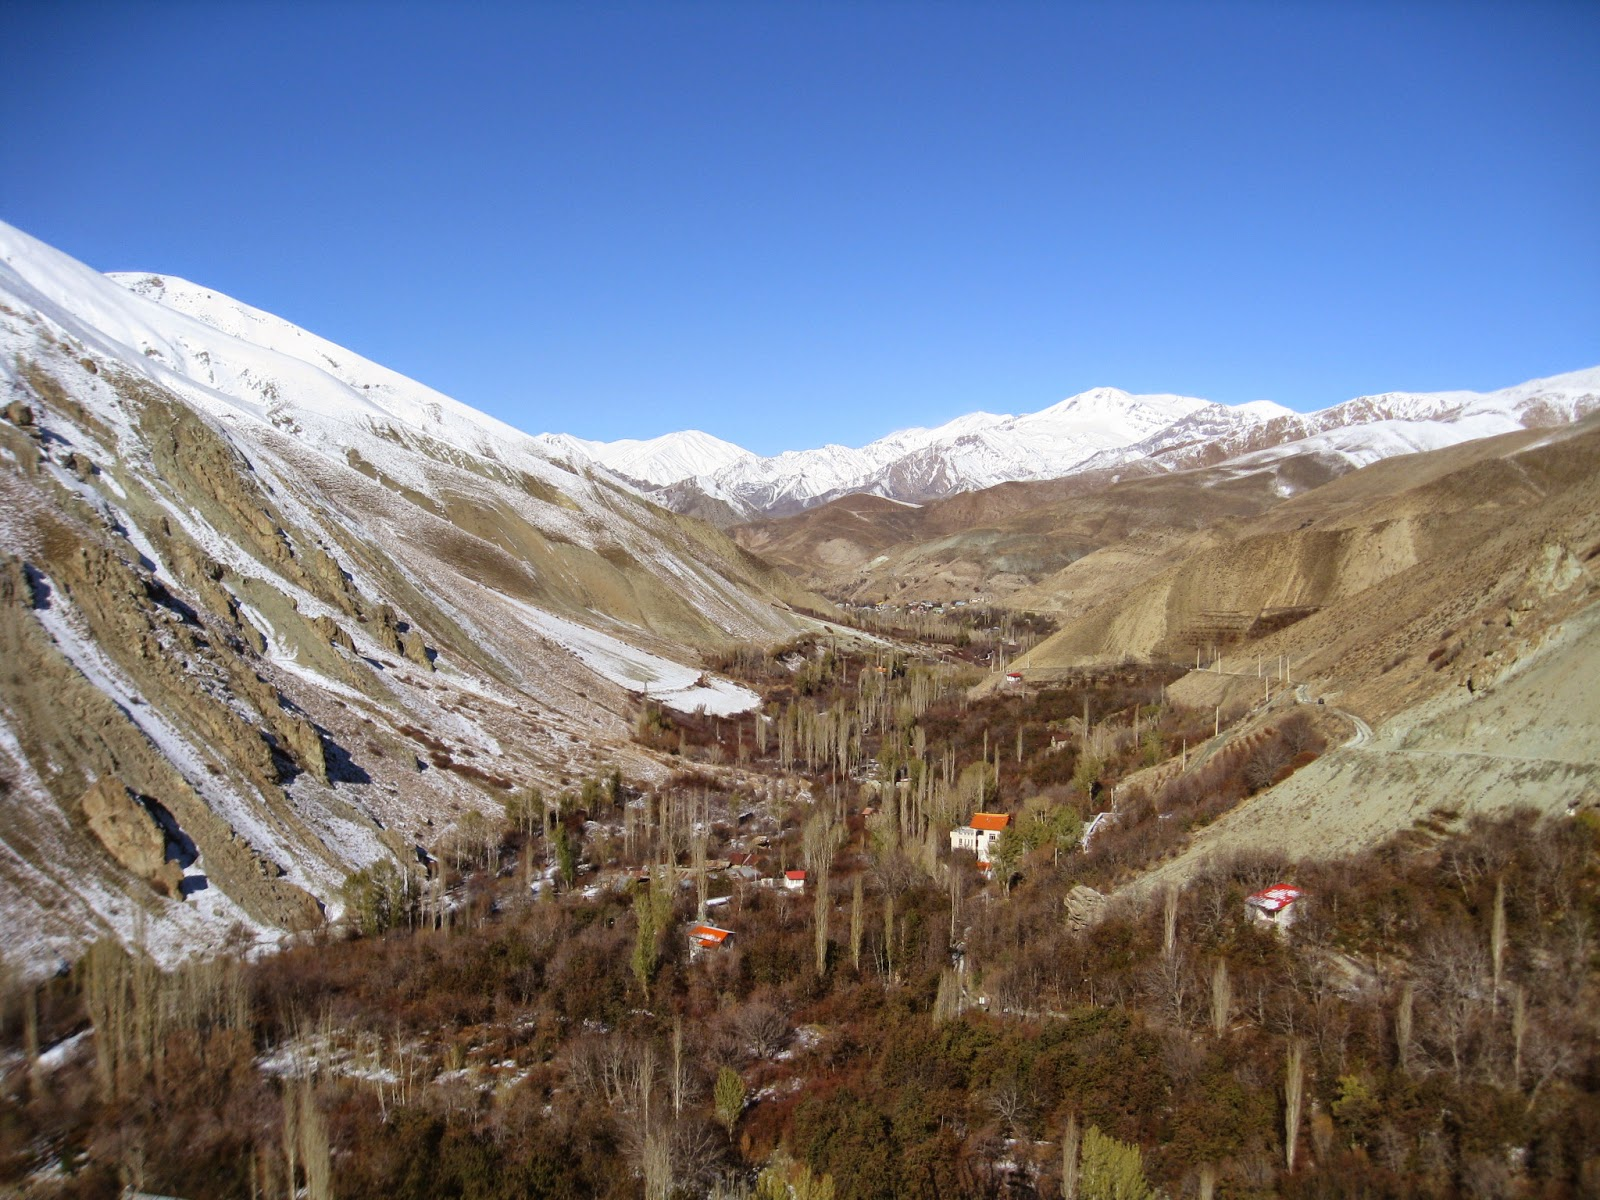 Shahrestanak scenery in autumn